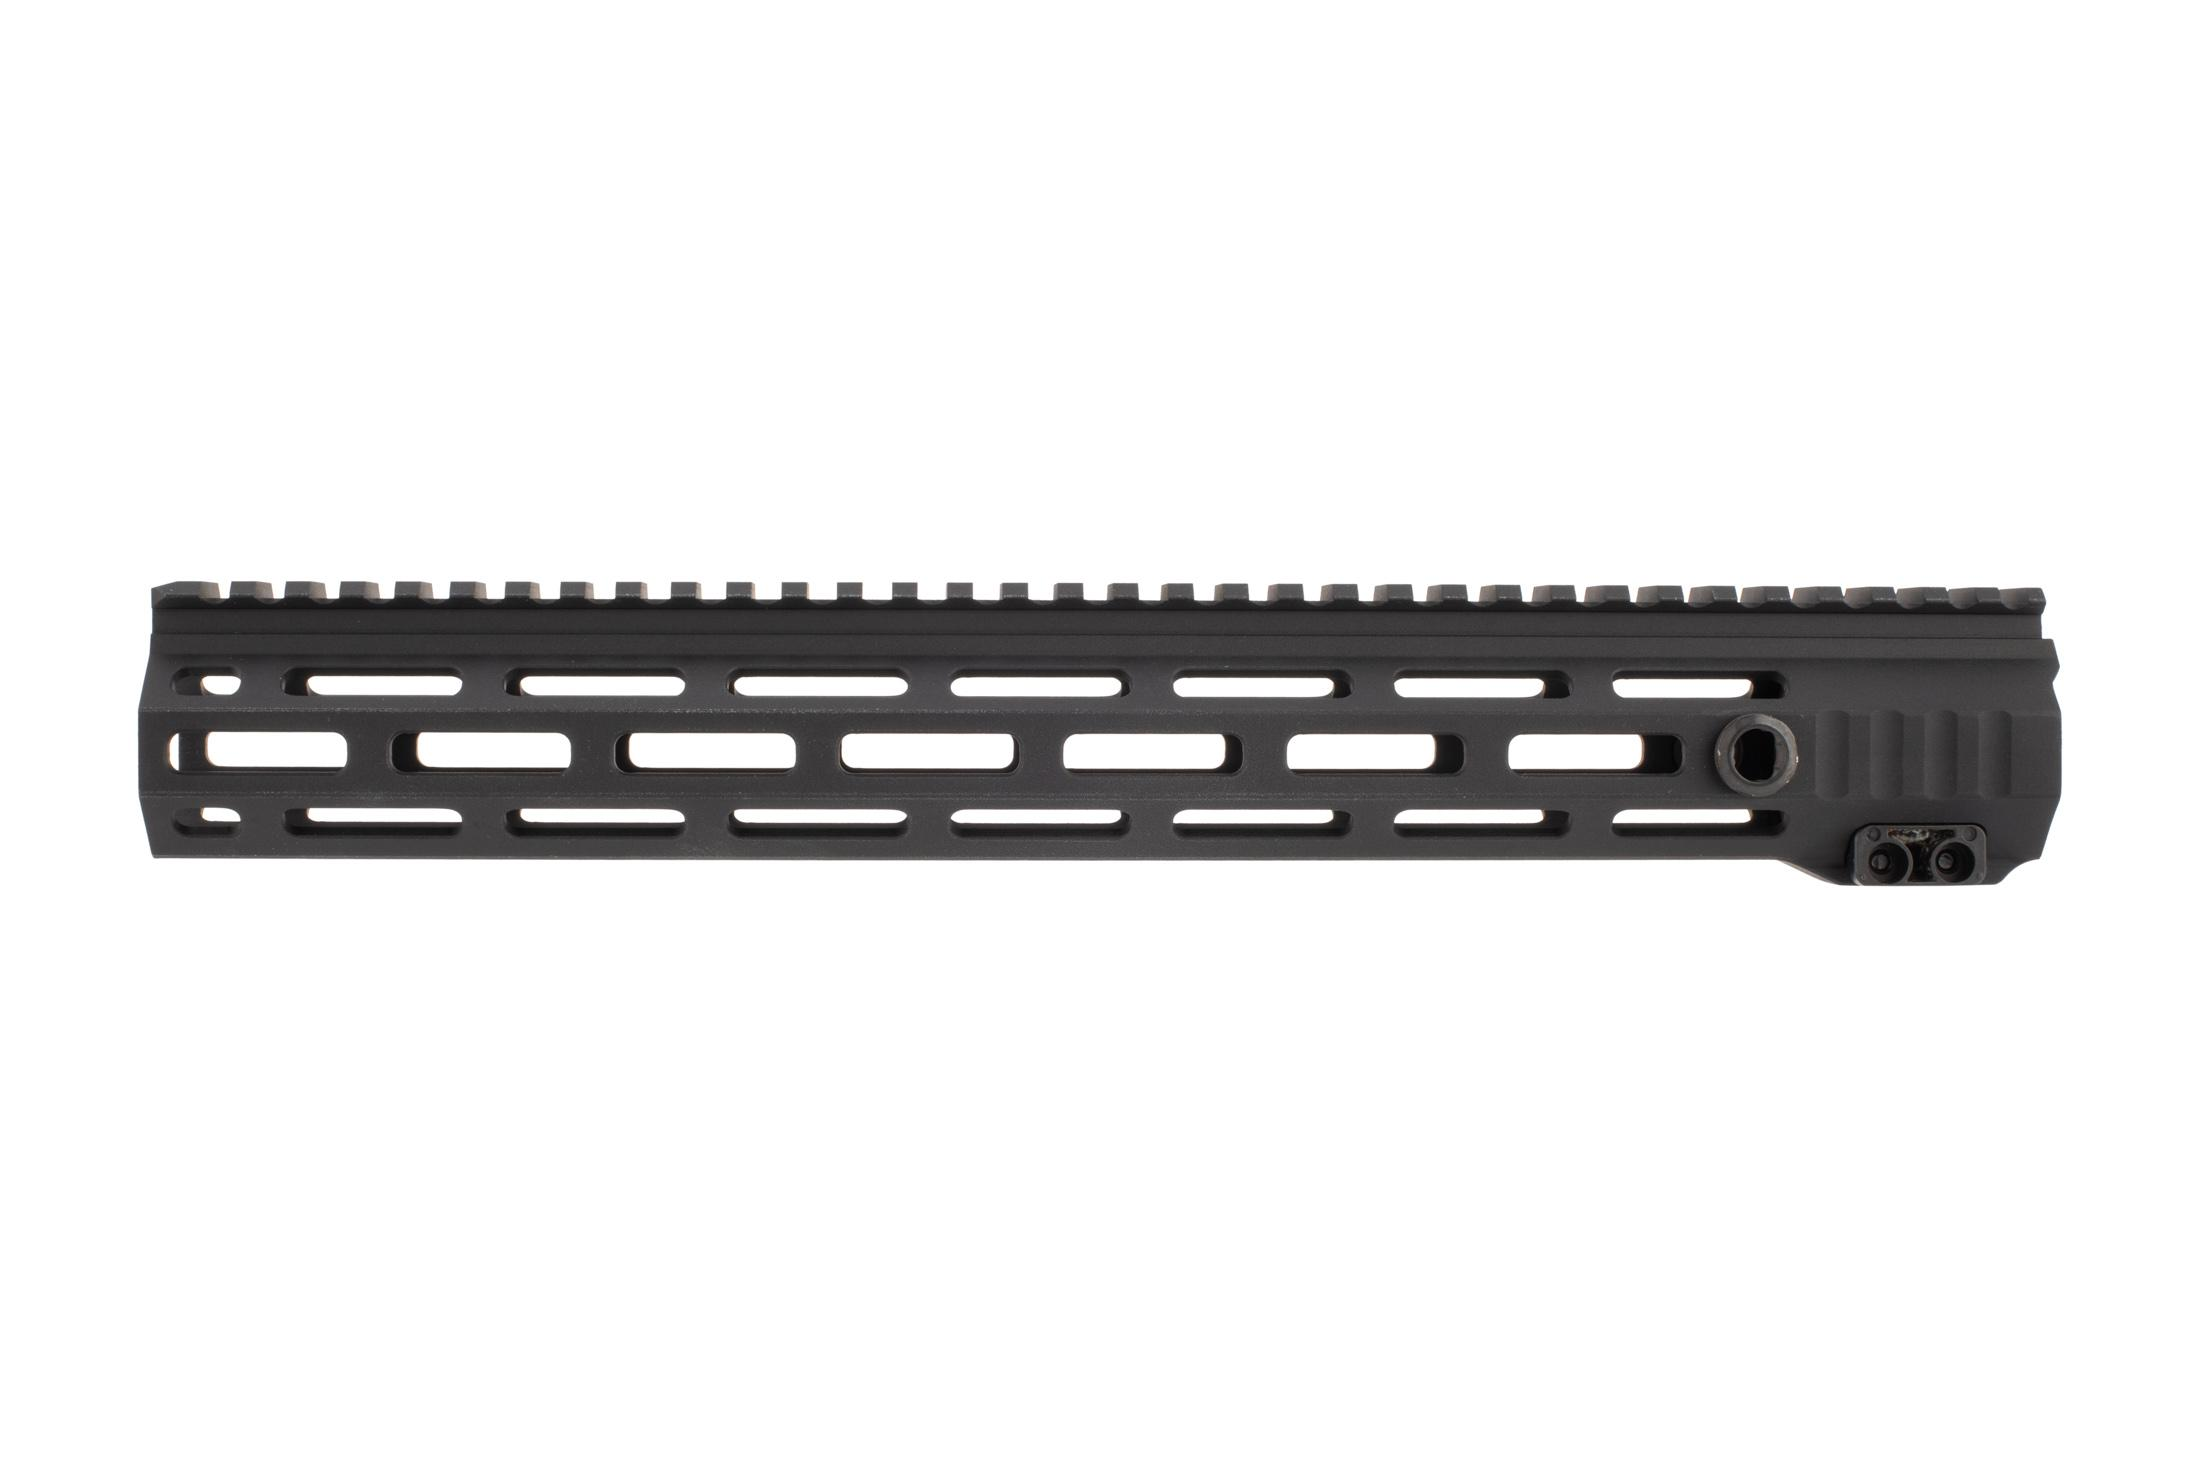 The CMT Tactical UHPR HDX Mod 2 AR15 handguard comes with a barrel nut for installation